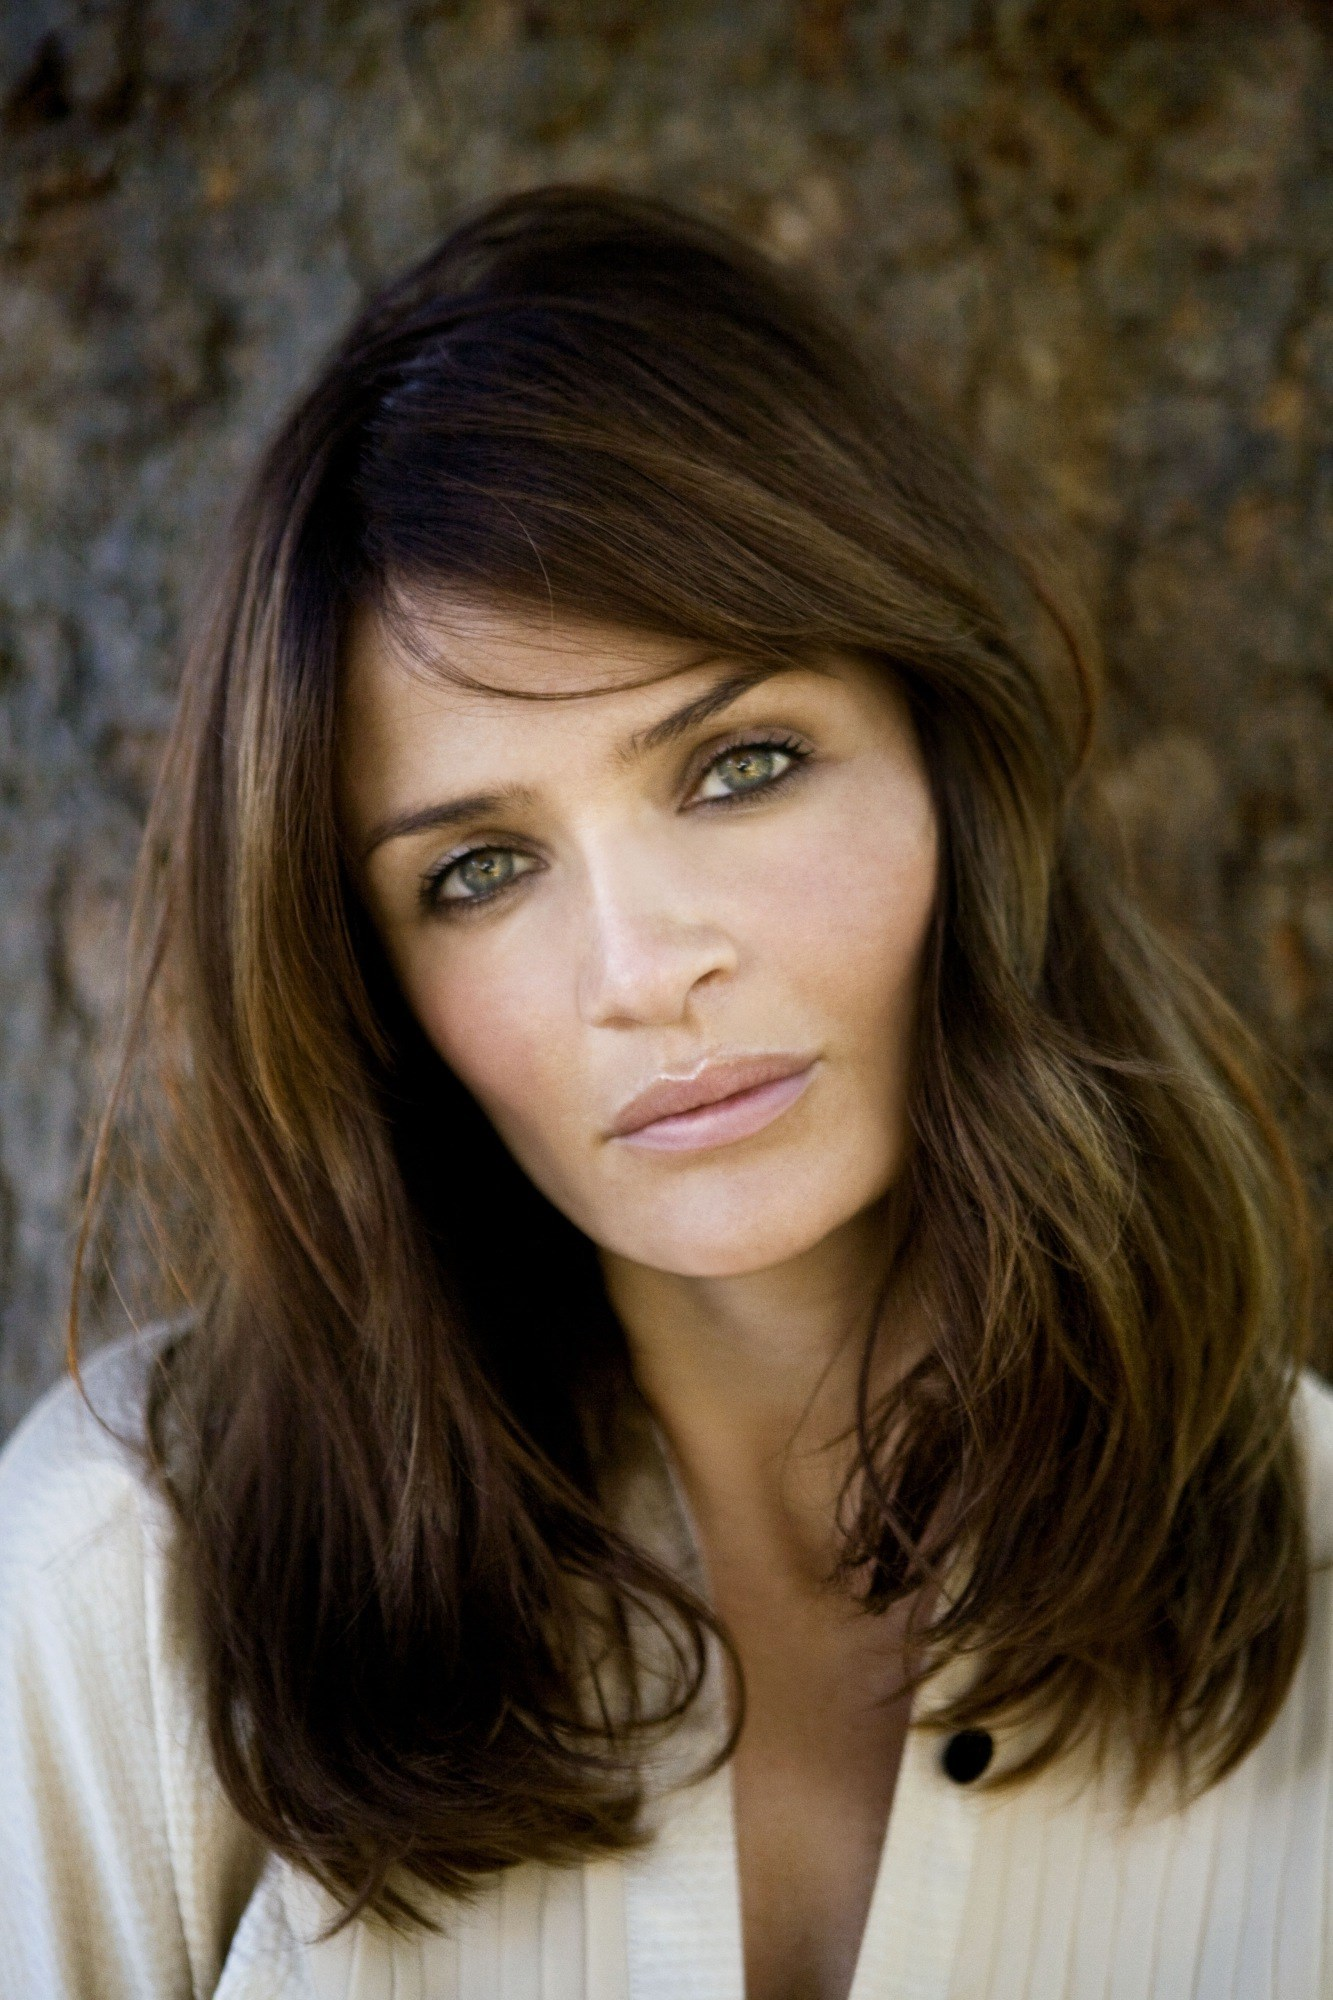 Helena Christensen Known People Famous People News And